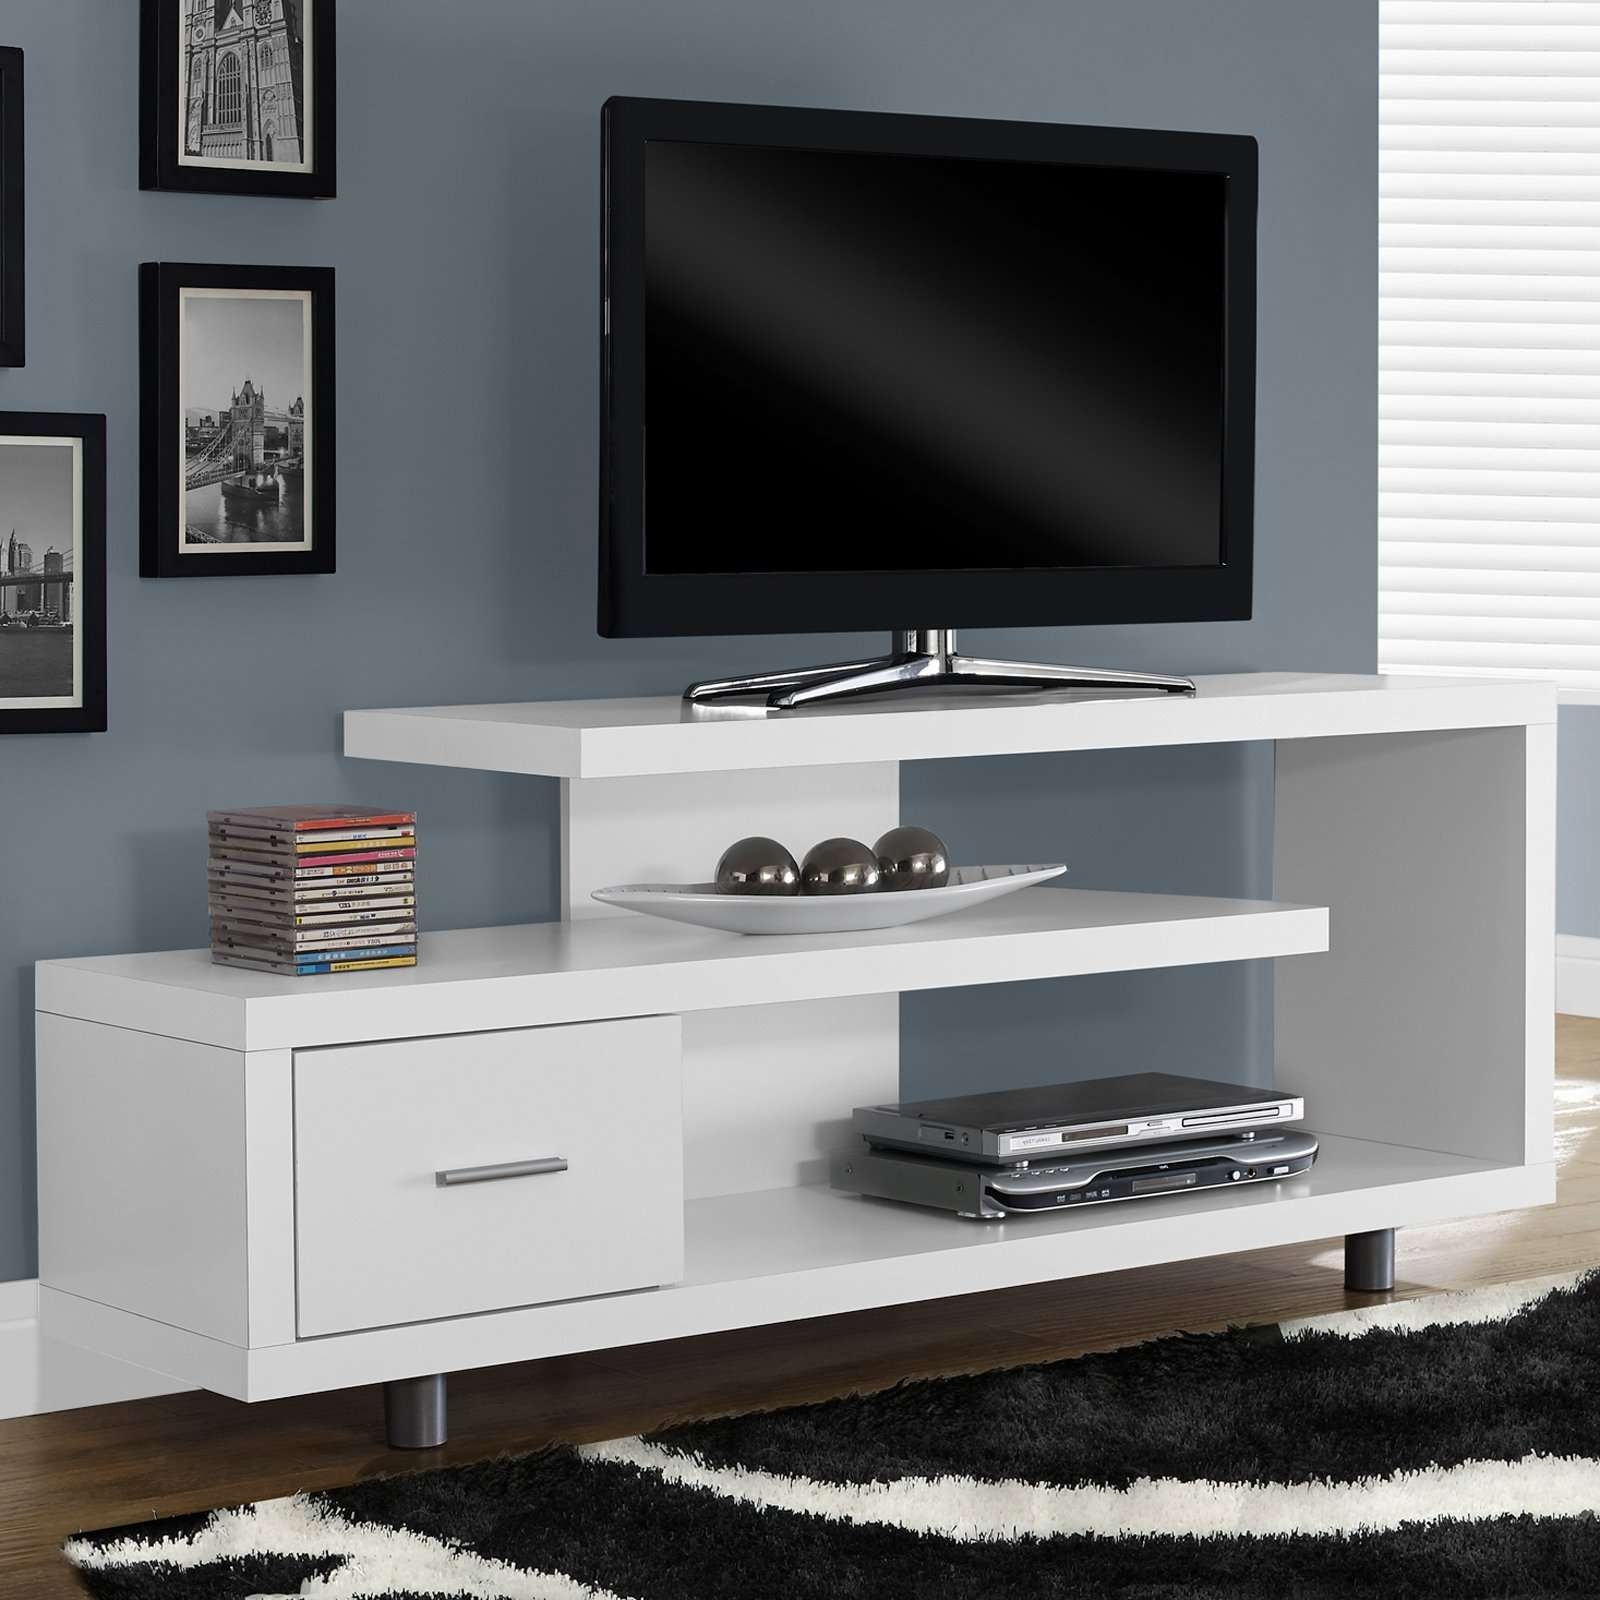 Tvilum Match Tv Stand With Adjustable Shelves – White | Hayneedle For Fancy Tv Cabinets (View 5 of 20)